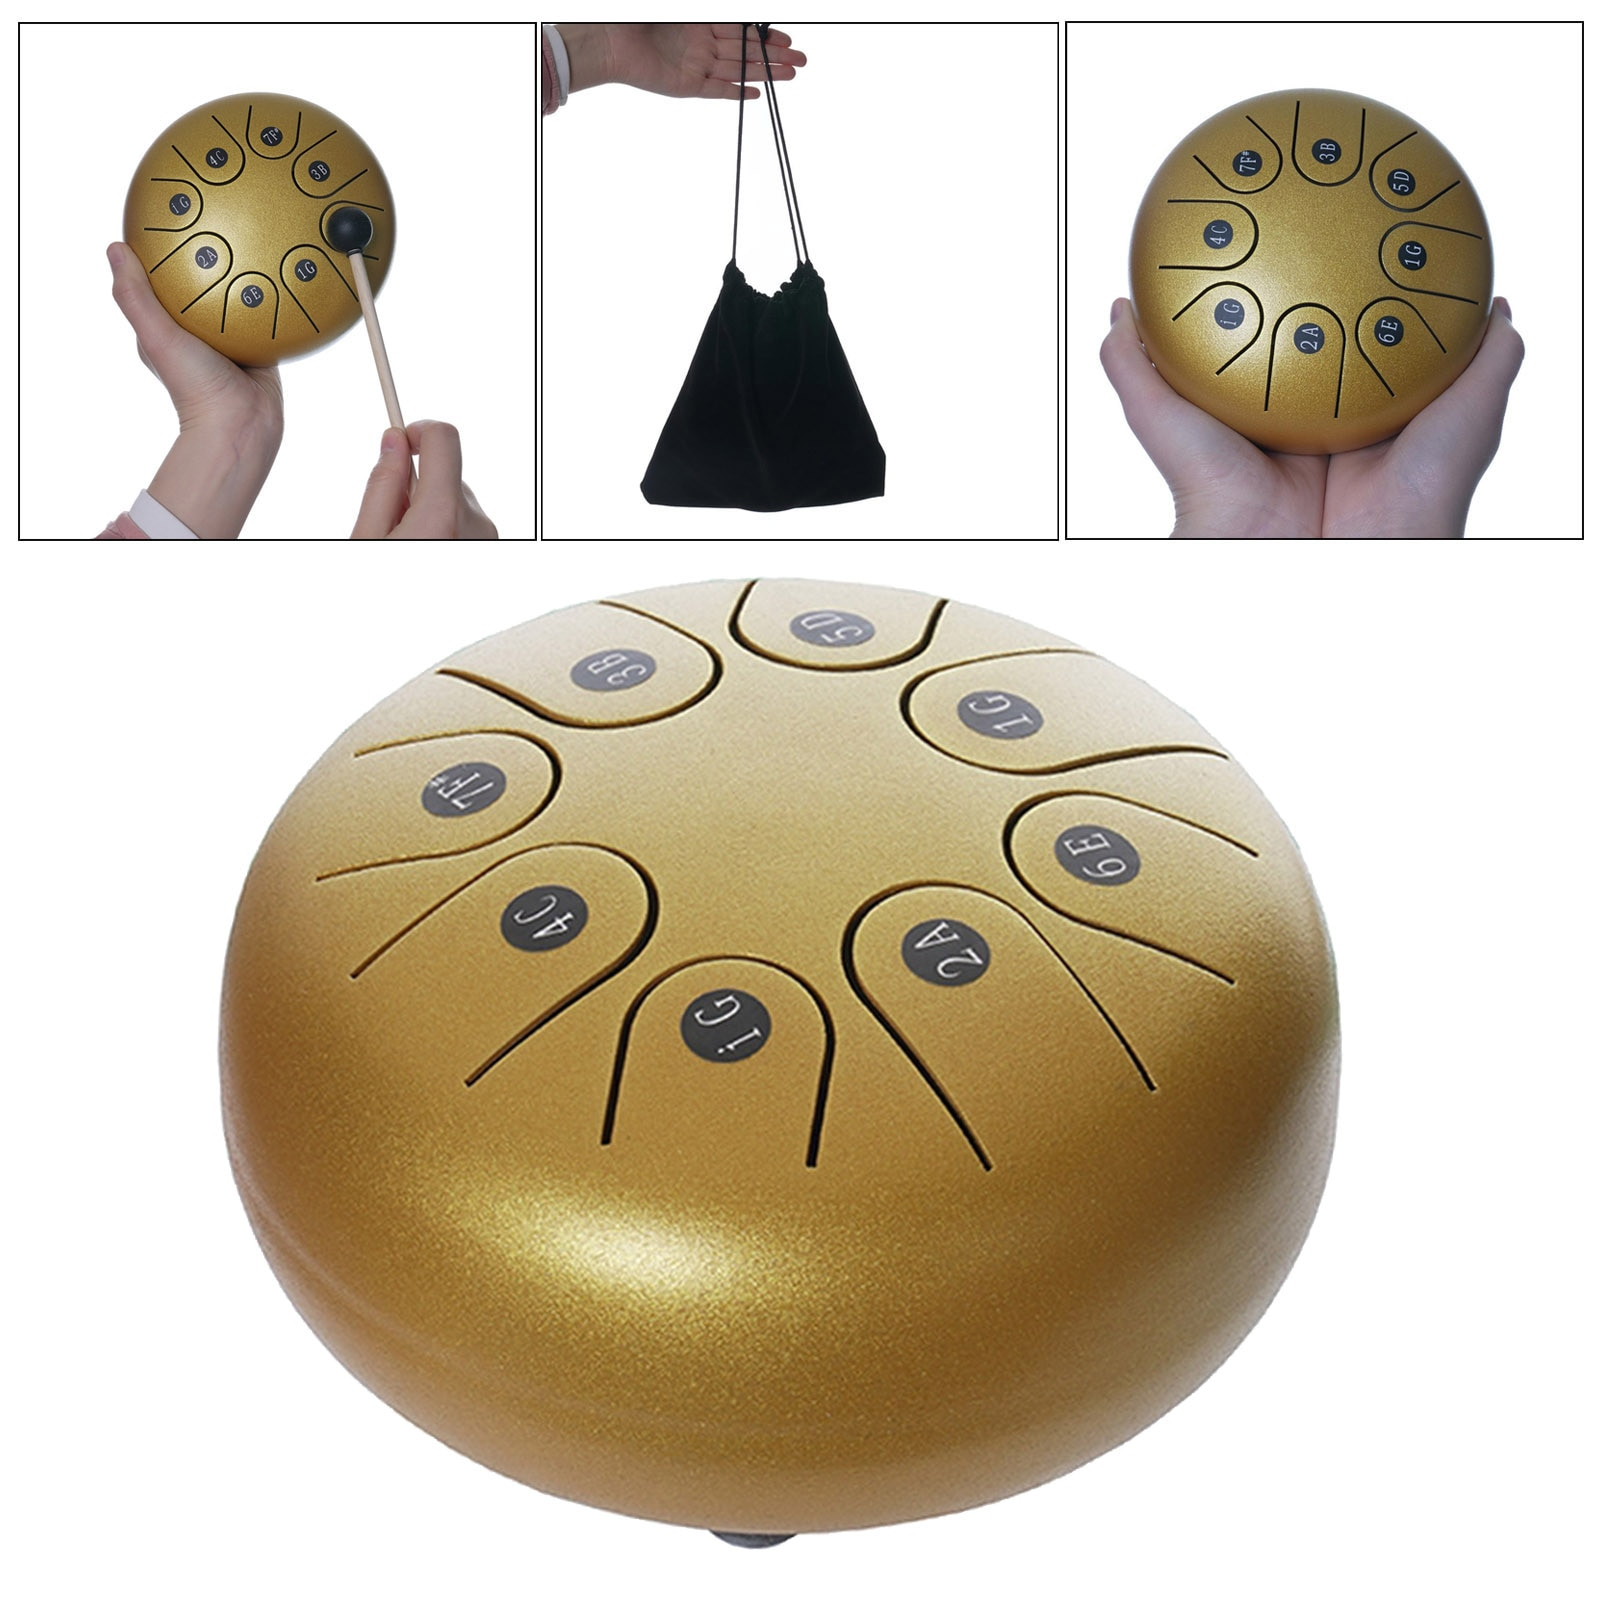 8 Tone 6 Inch Tongue Drum and Drumsticks Present for Beginner enlarge